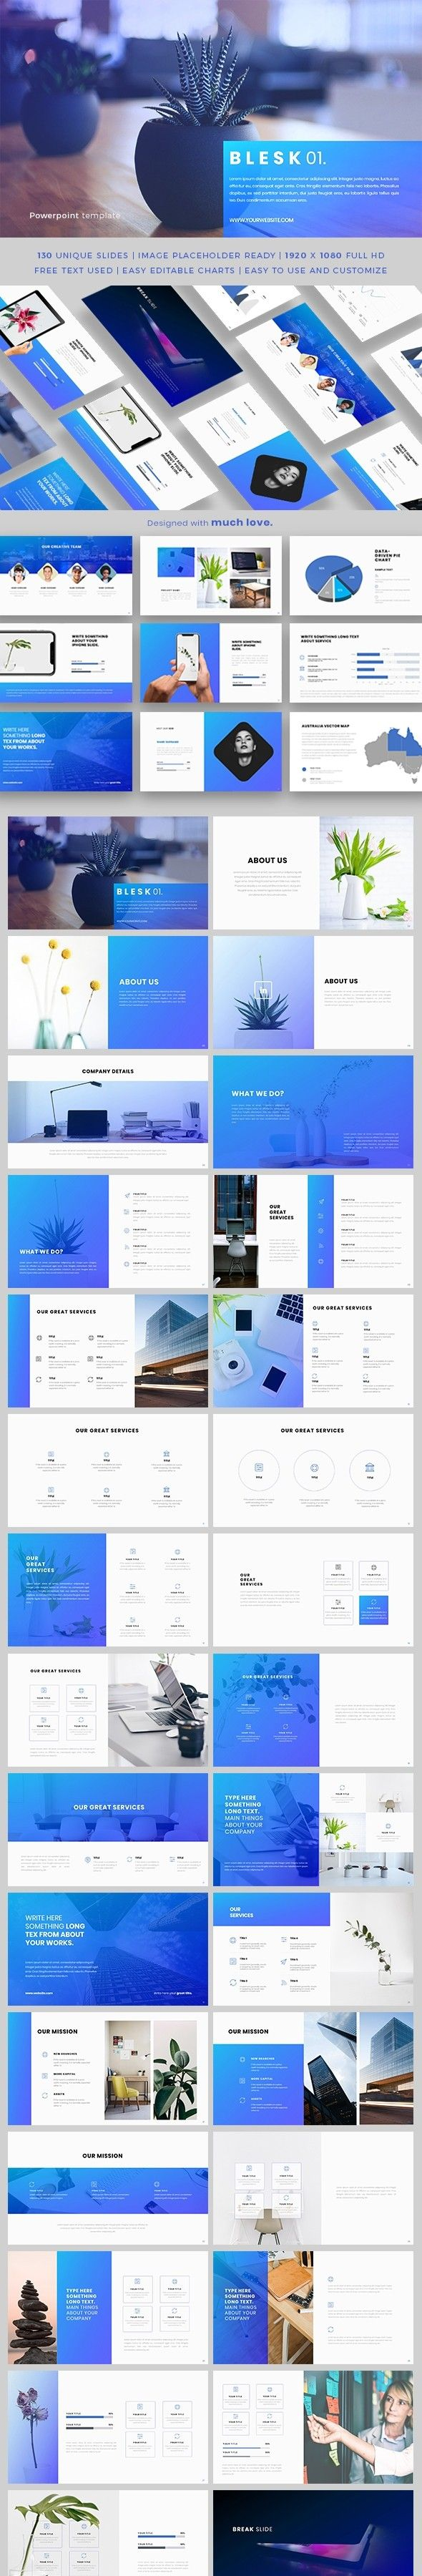 Blesk Powerpoint Template Pinterest Powerpoint Themes Cleaning